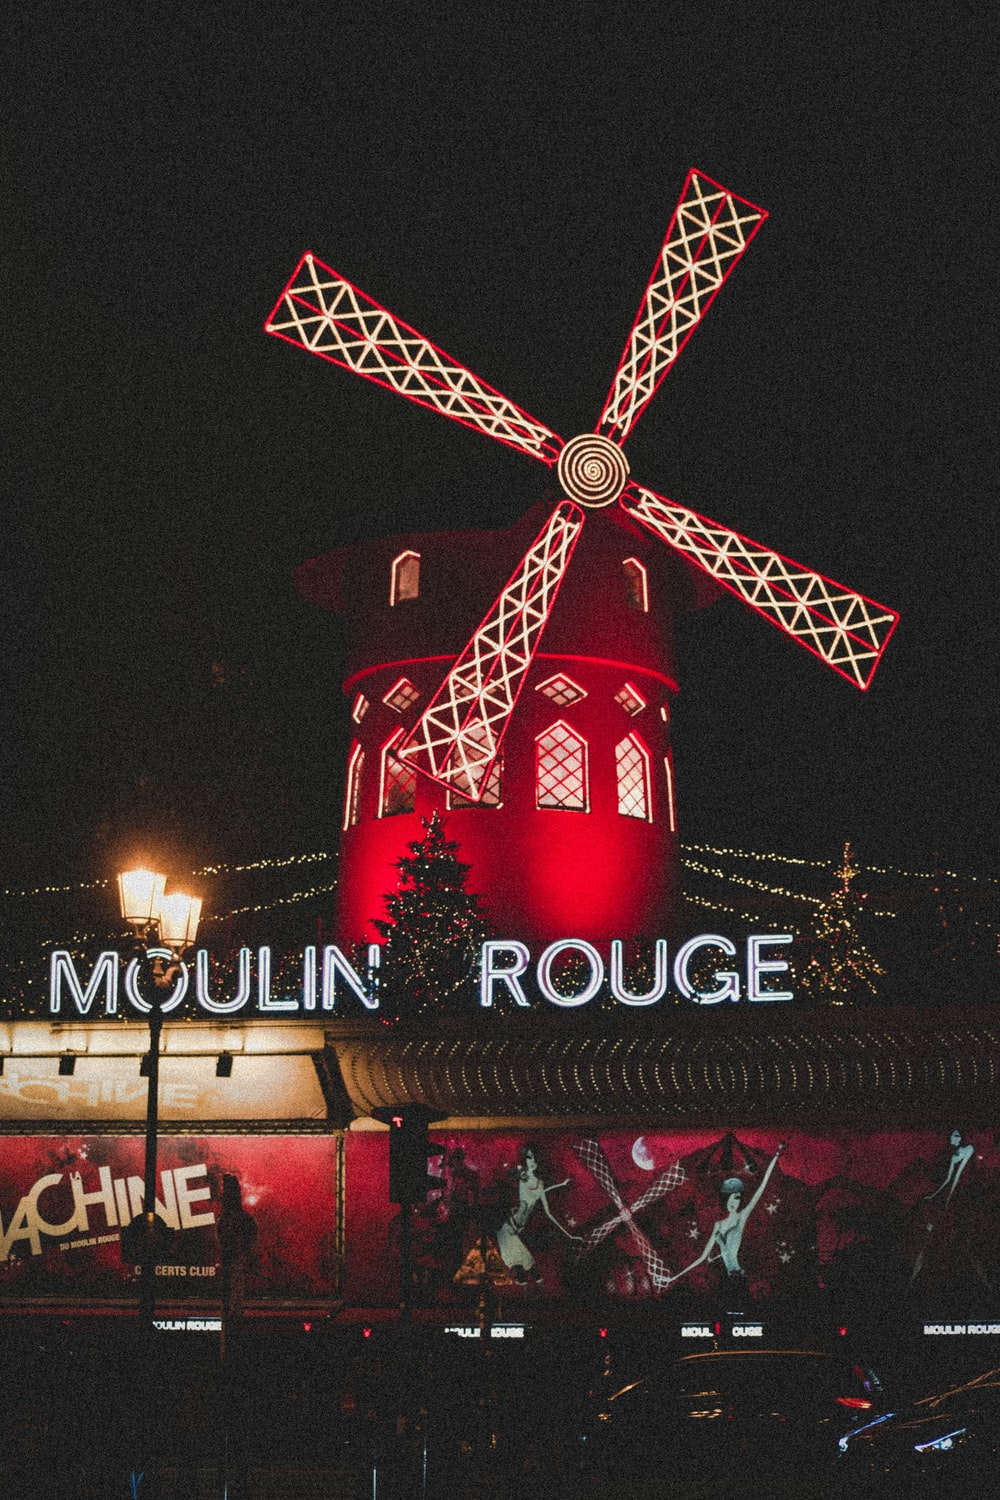 Moulin Rouge tavern